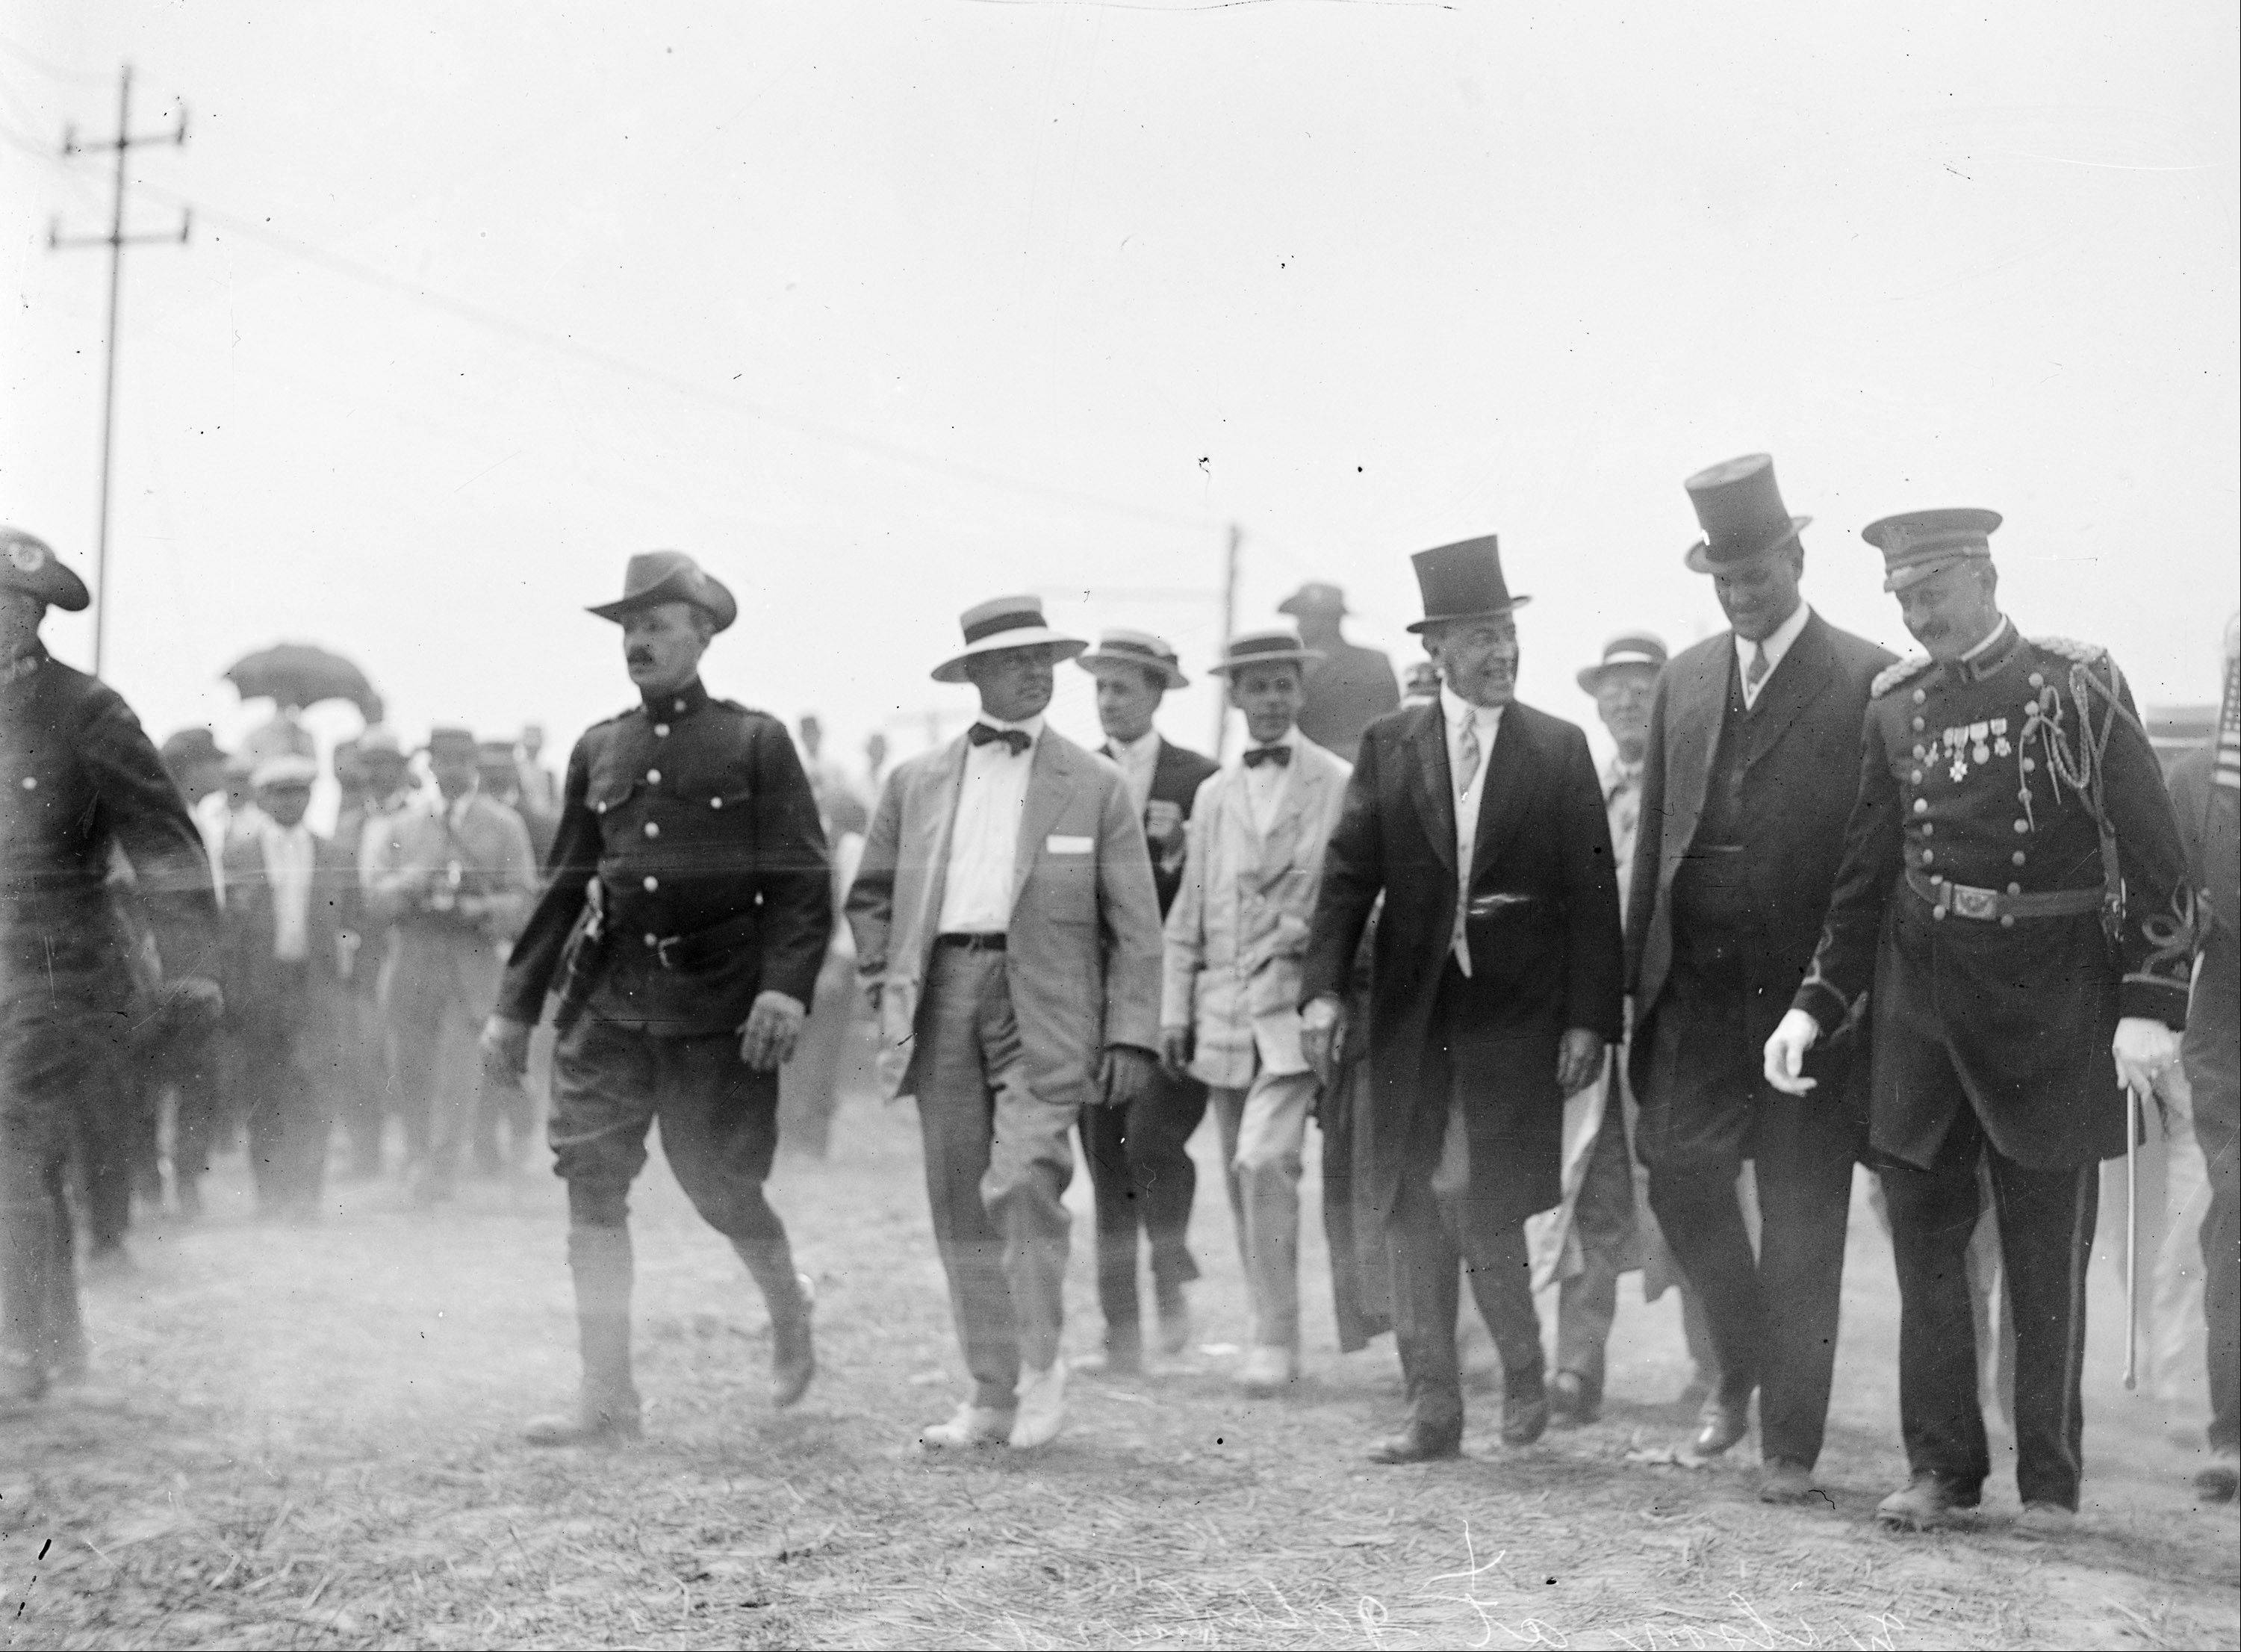 In this July 1913 photo made available by the Library of Congress, President Woodrow Wilson, third from right, attends a commemoration for the 50th anniversary of the Battle of Gettysburg. After Abraham Lincoln, the first major presidential address at Gettysburg was given at this event by Wilson, who privately ranked Lincoln�s speech as �very, very high,� and offered a vague tribute to national unity that disappointed admirers of a man whose speechmaking had enabled his quick rise from Princeton president to the White House. According to a new biography by A. Scott Berg, Wilson was a reluctant guest of honor. He initially turned down an invitation and gave in only after being warned that the Virginia-born president would be perceived as hostile to a gathering attended by veterans from both sides.